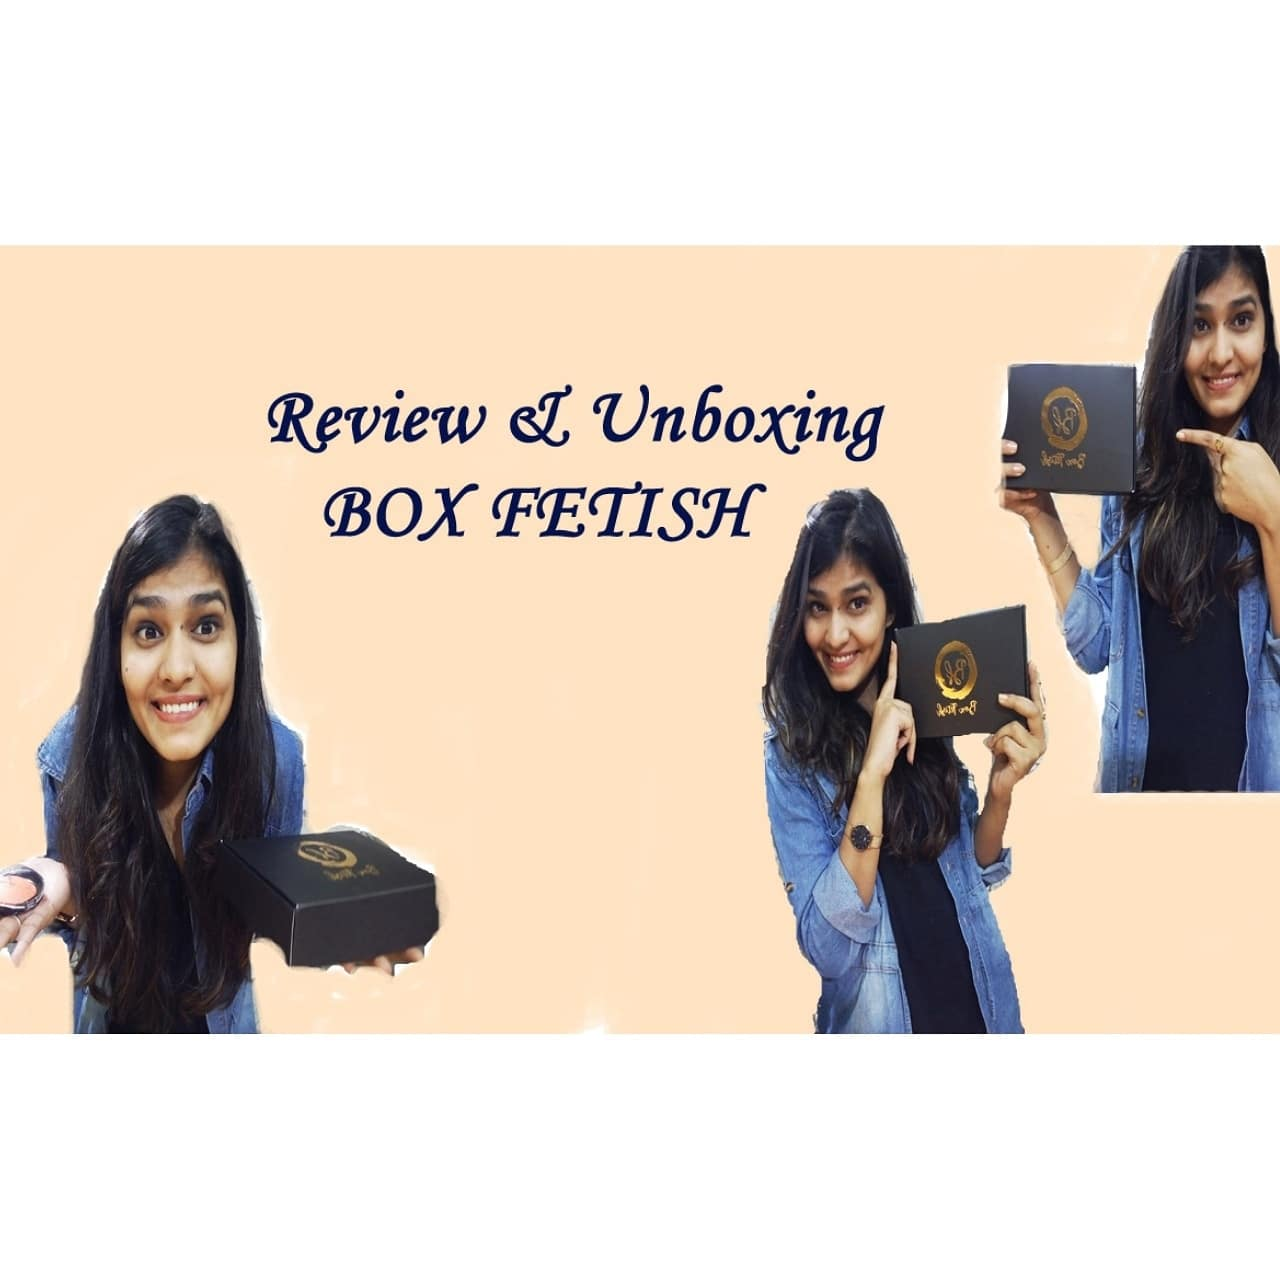 Review and Unbxoing of @boxfetish is up on my youtube channel now.  Please like, comment, share and subscribe. 🌟 . .  https://youtu.be/tPgYKwAGreg { also link in bio} . . #fashion #beauty #beautyblogger#Instadaily #beautyblog #beautybox #love #video #videolover #videoblogger#videoporn #videolove #vlog #review #reviewer #beautyboxreview #youtuber #youtubevideo #youtube #treasuremuse 😘 #roposo #soroposo #ropo-love#ropo-good #roposostyle#roposogirl#roposostyle #roposo #roposofashiondiaries